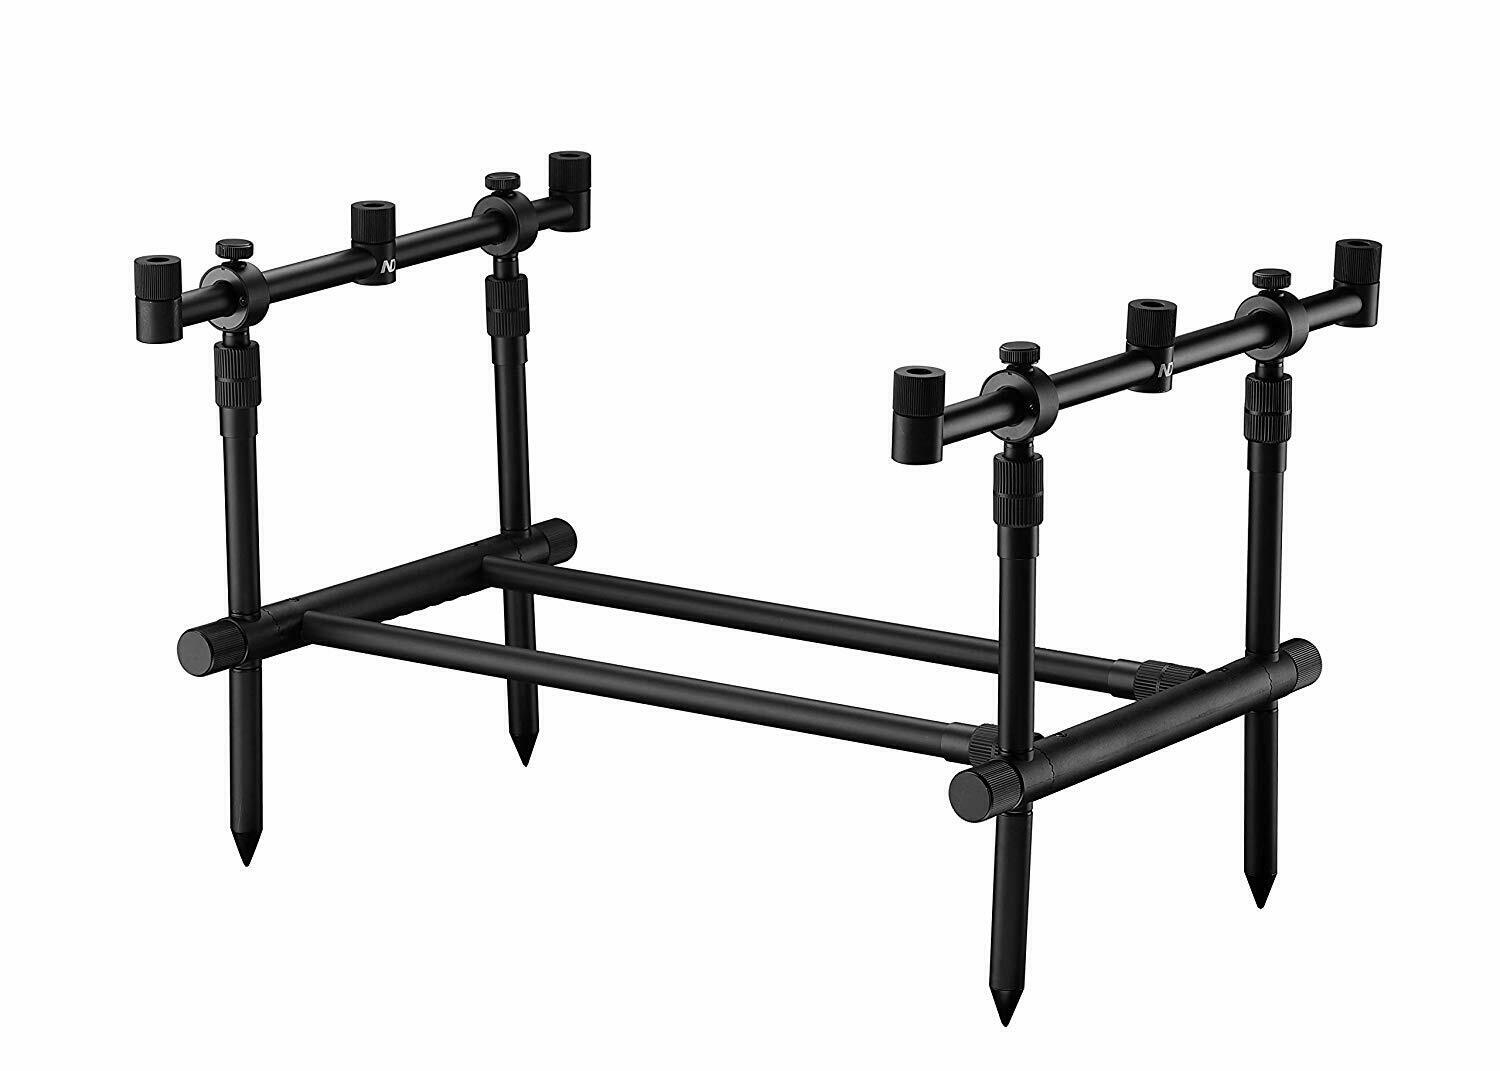 ND Tackle P9 Rod Pod With Buzz Bar Lightweight Adjustable Rod Holder&Carry Case